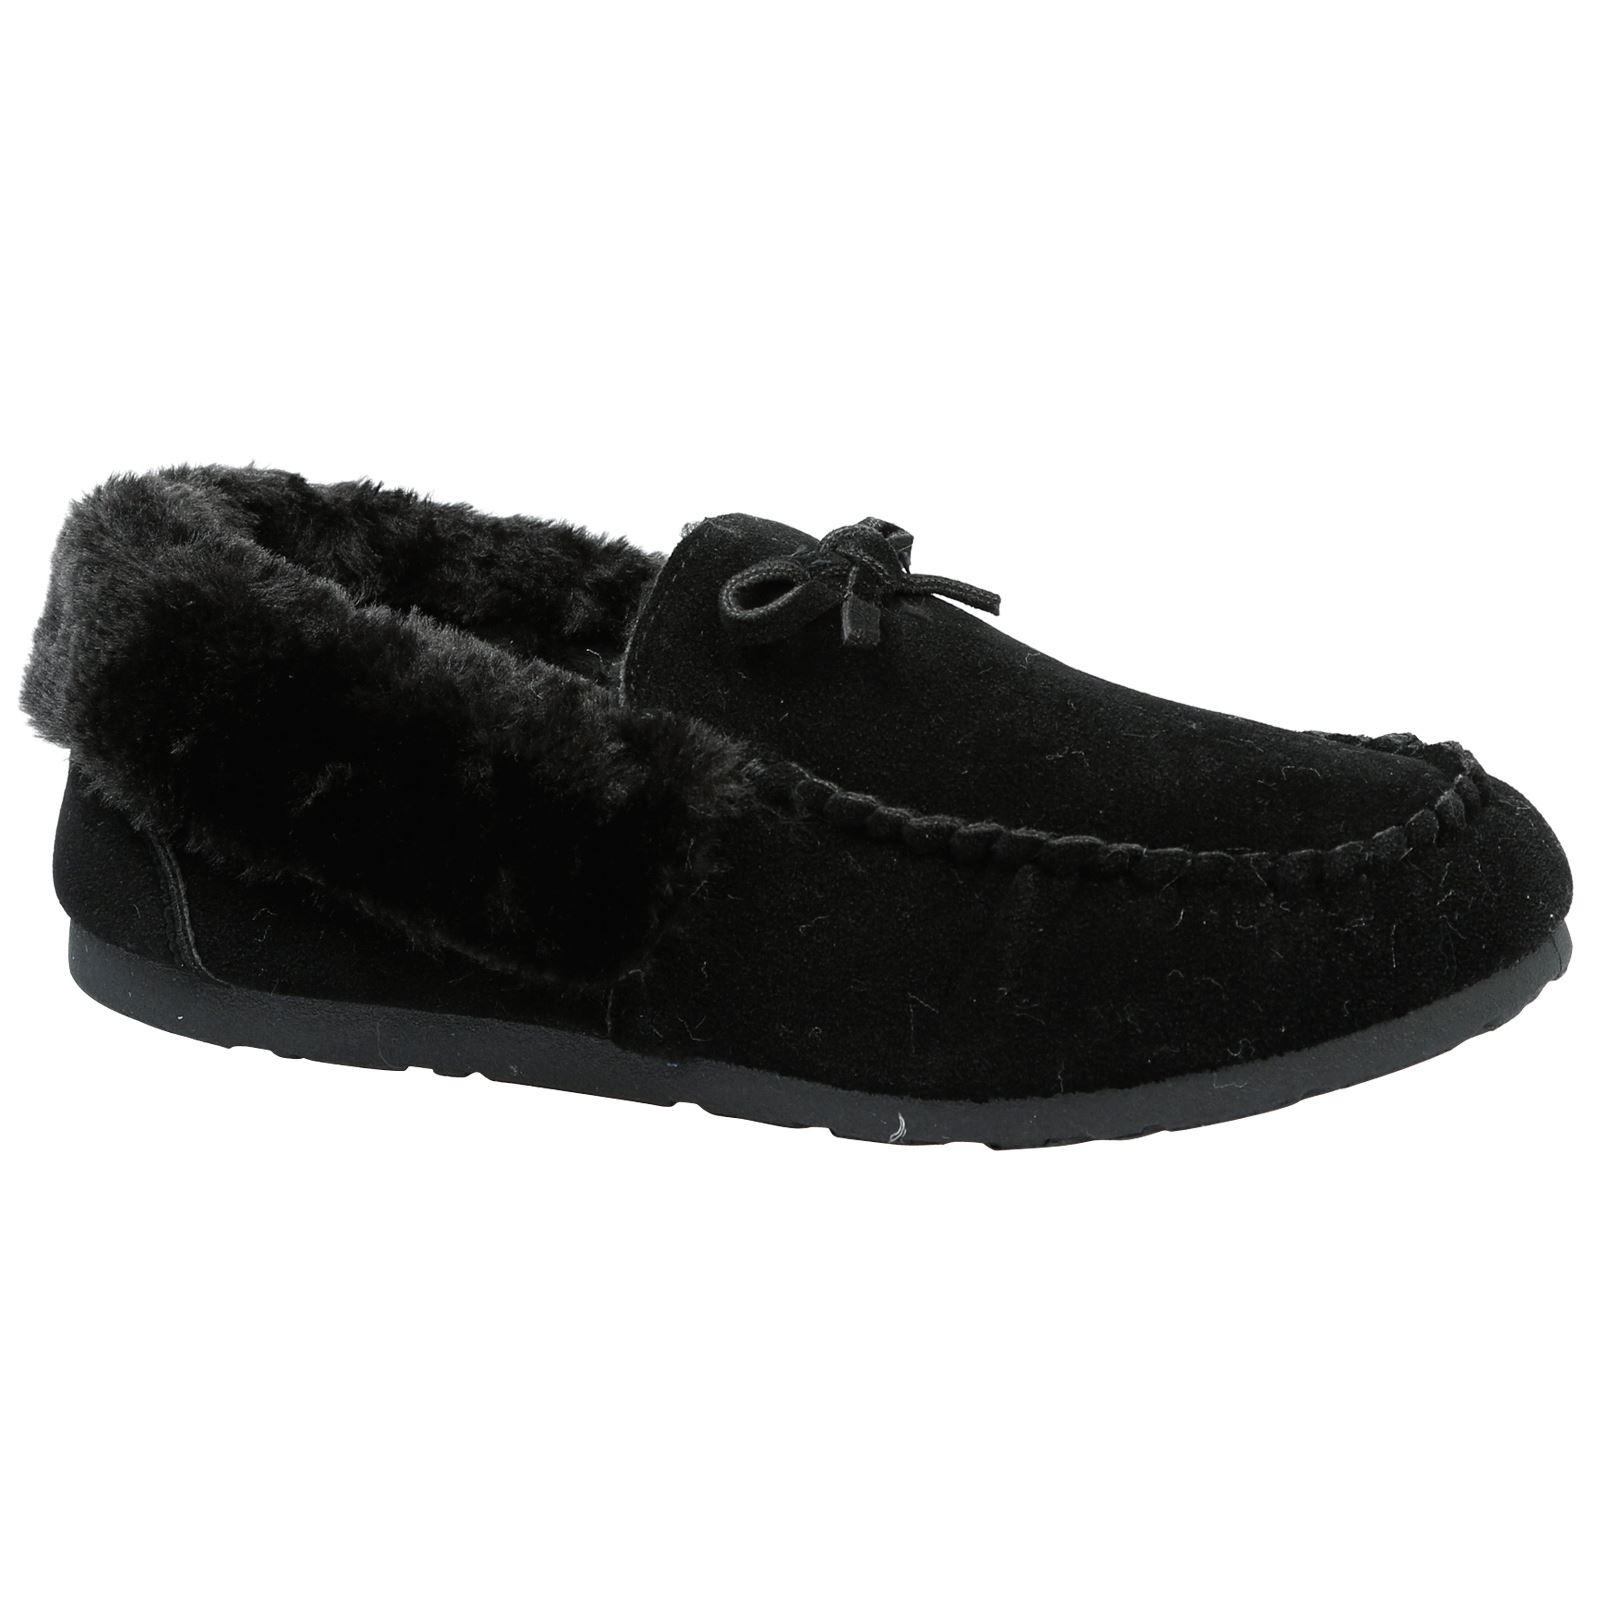 Vera Womens Flats Low Heels Fur Lined Slippers Moccasins